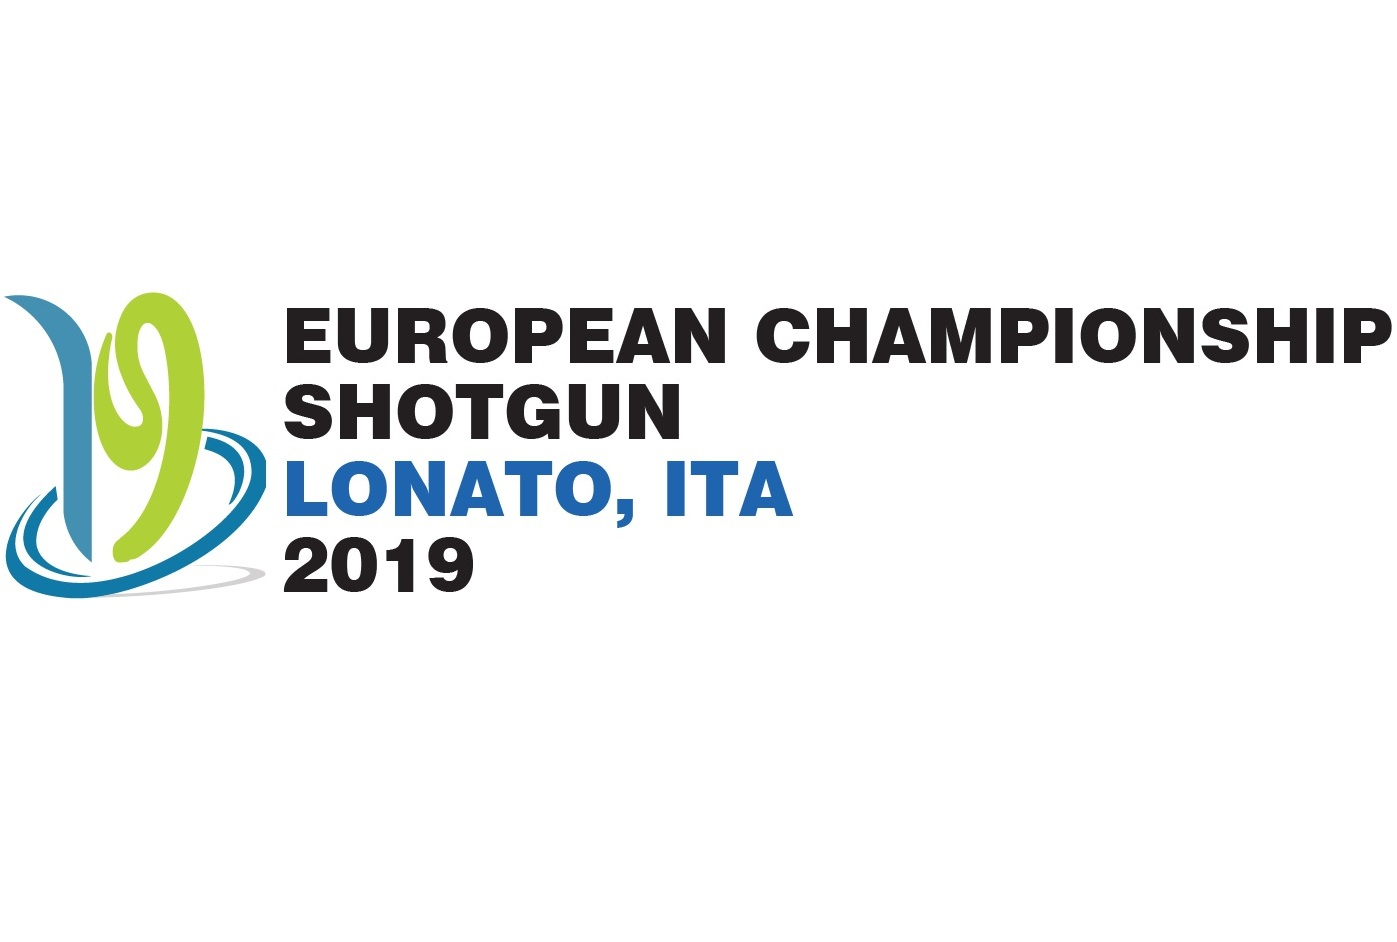 The 2019 European Championship in Italy is under threat again